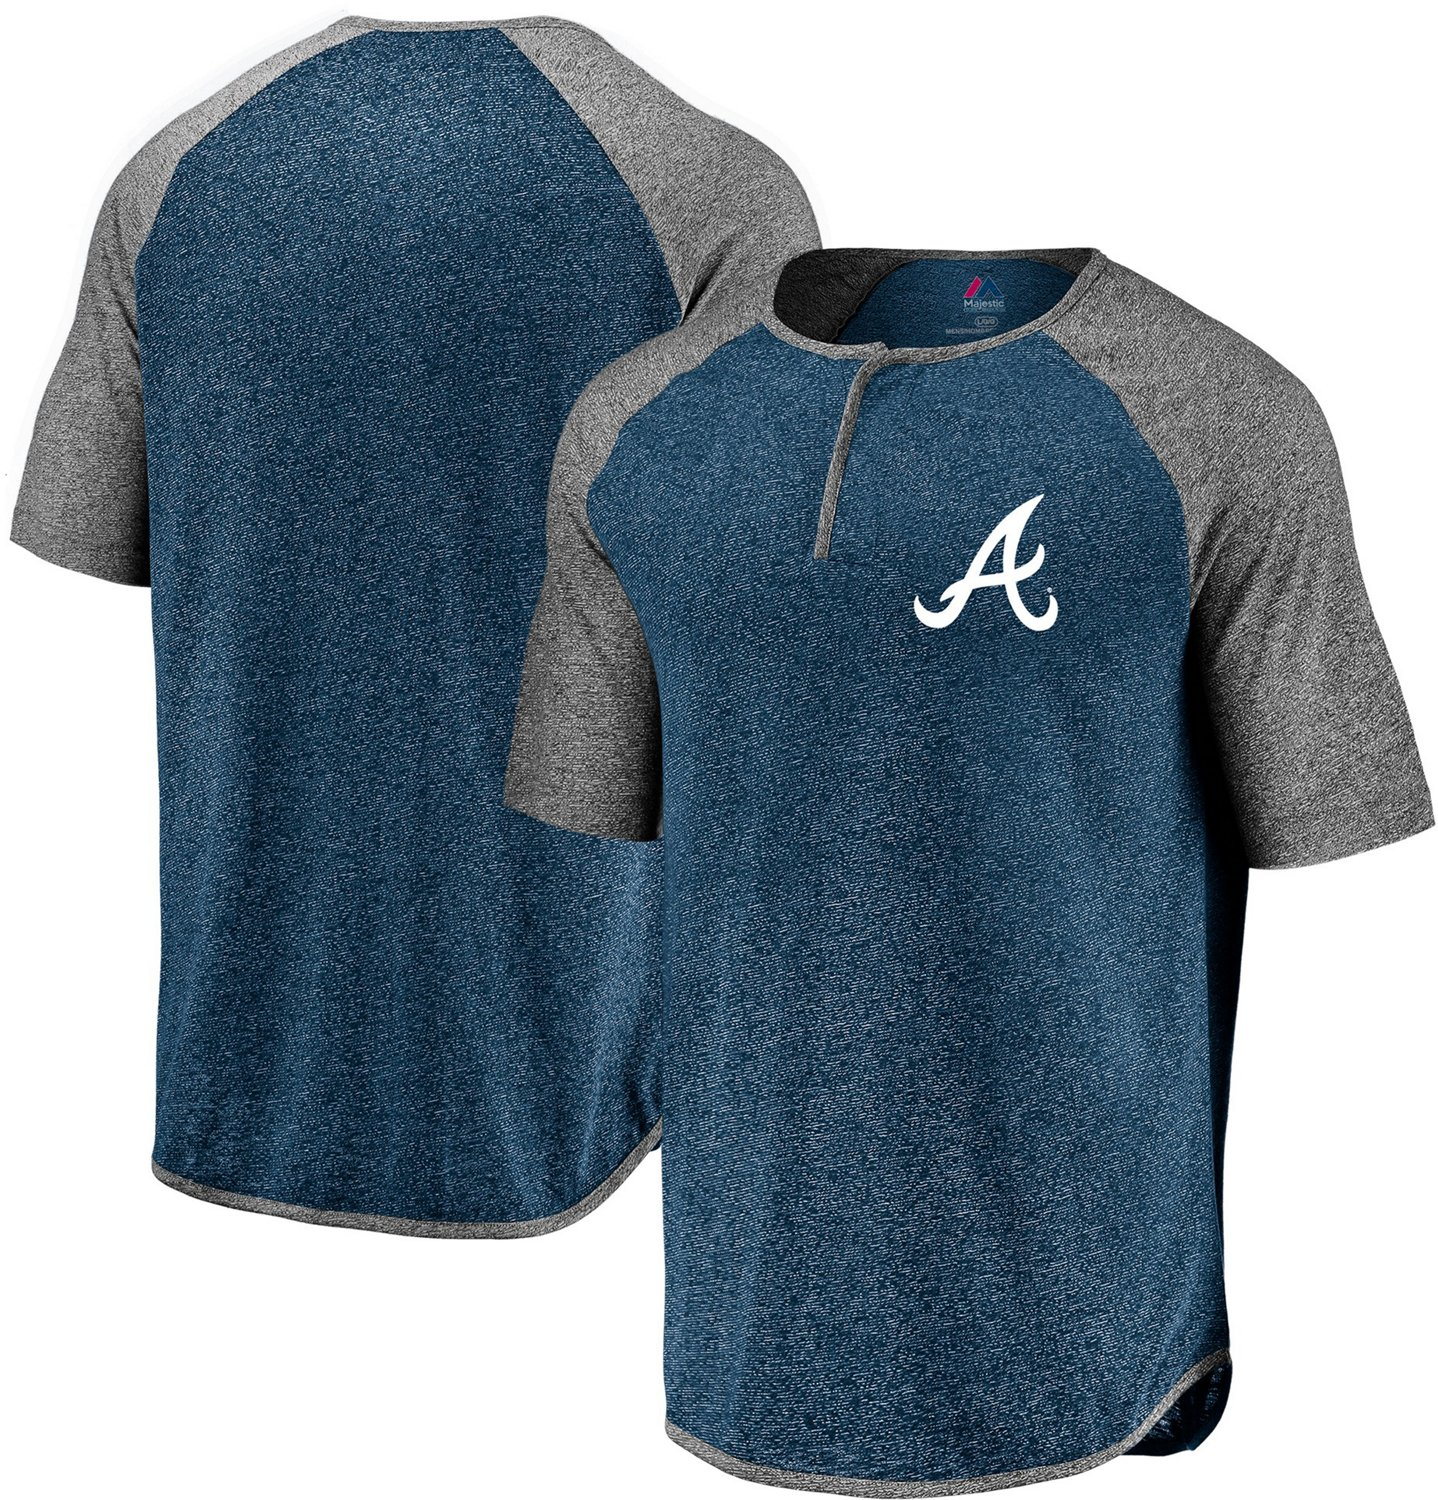 6b414eda13a9f Display product reviews for Majestic Men's Atlanta Braves Keeping Count  Henley T-shirt